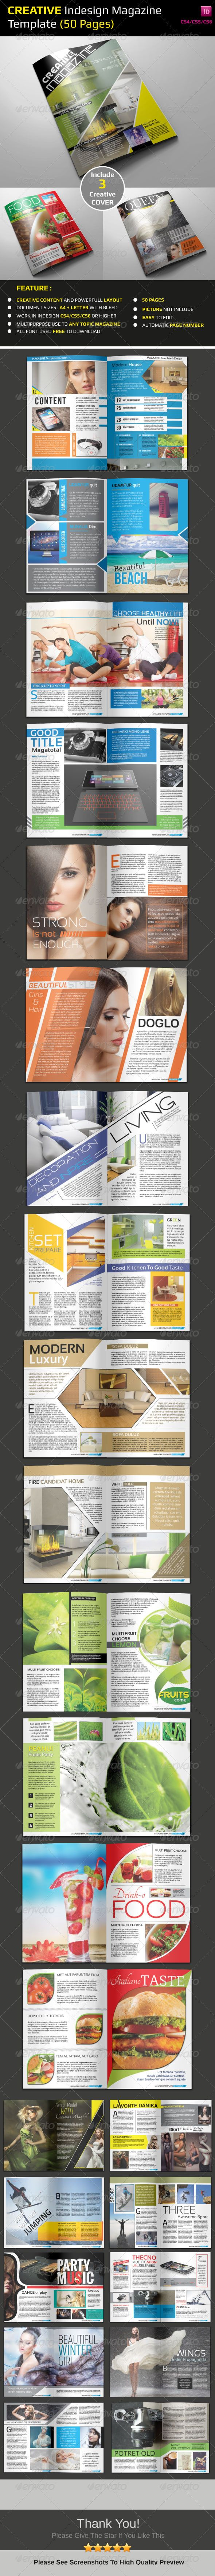 Creative Indesign Magazine Template (50 Pages) - Magazines Print Templates